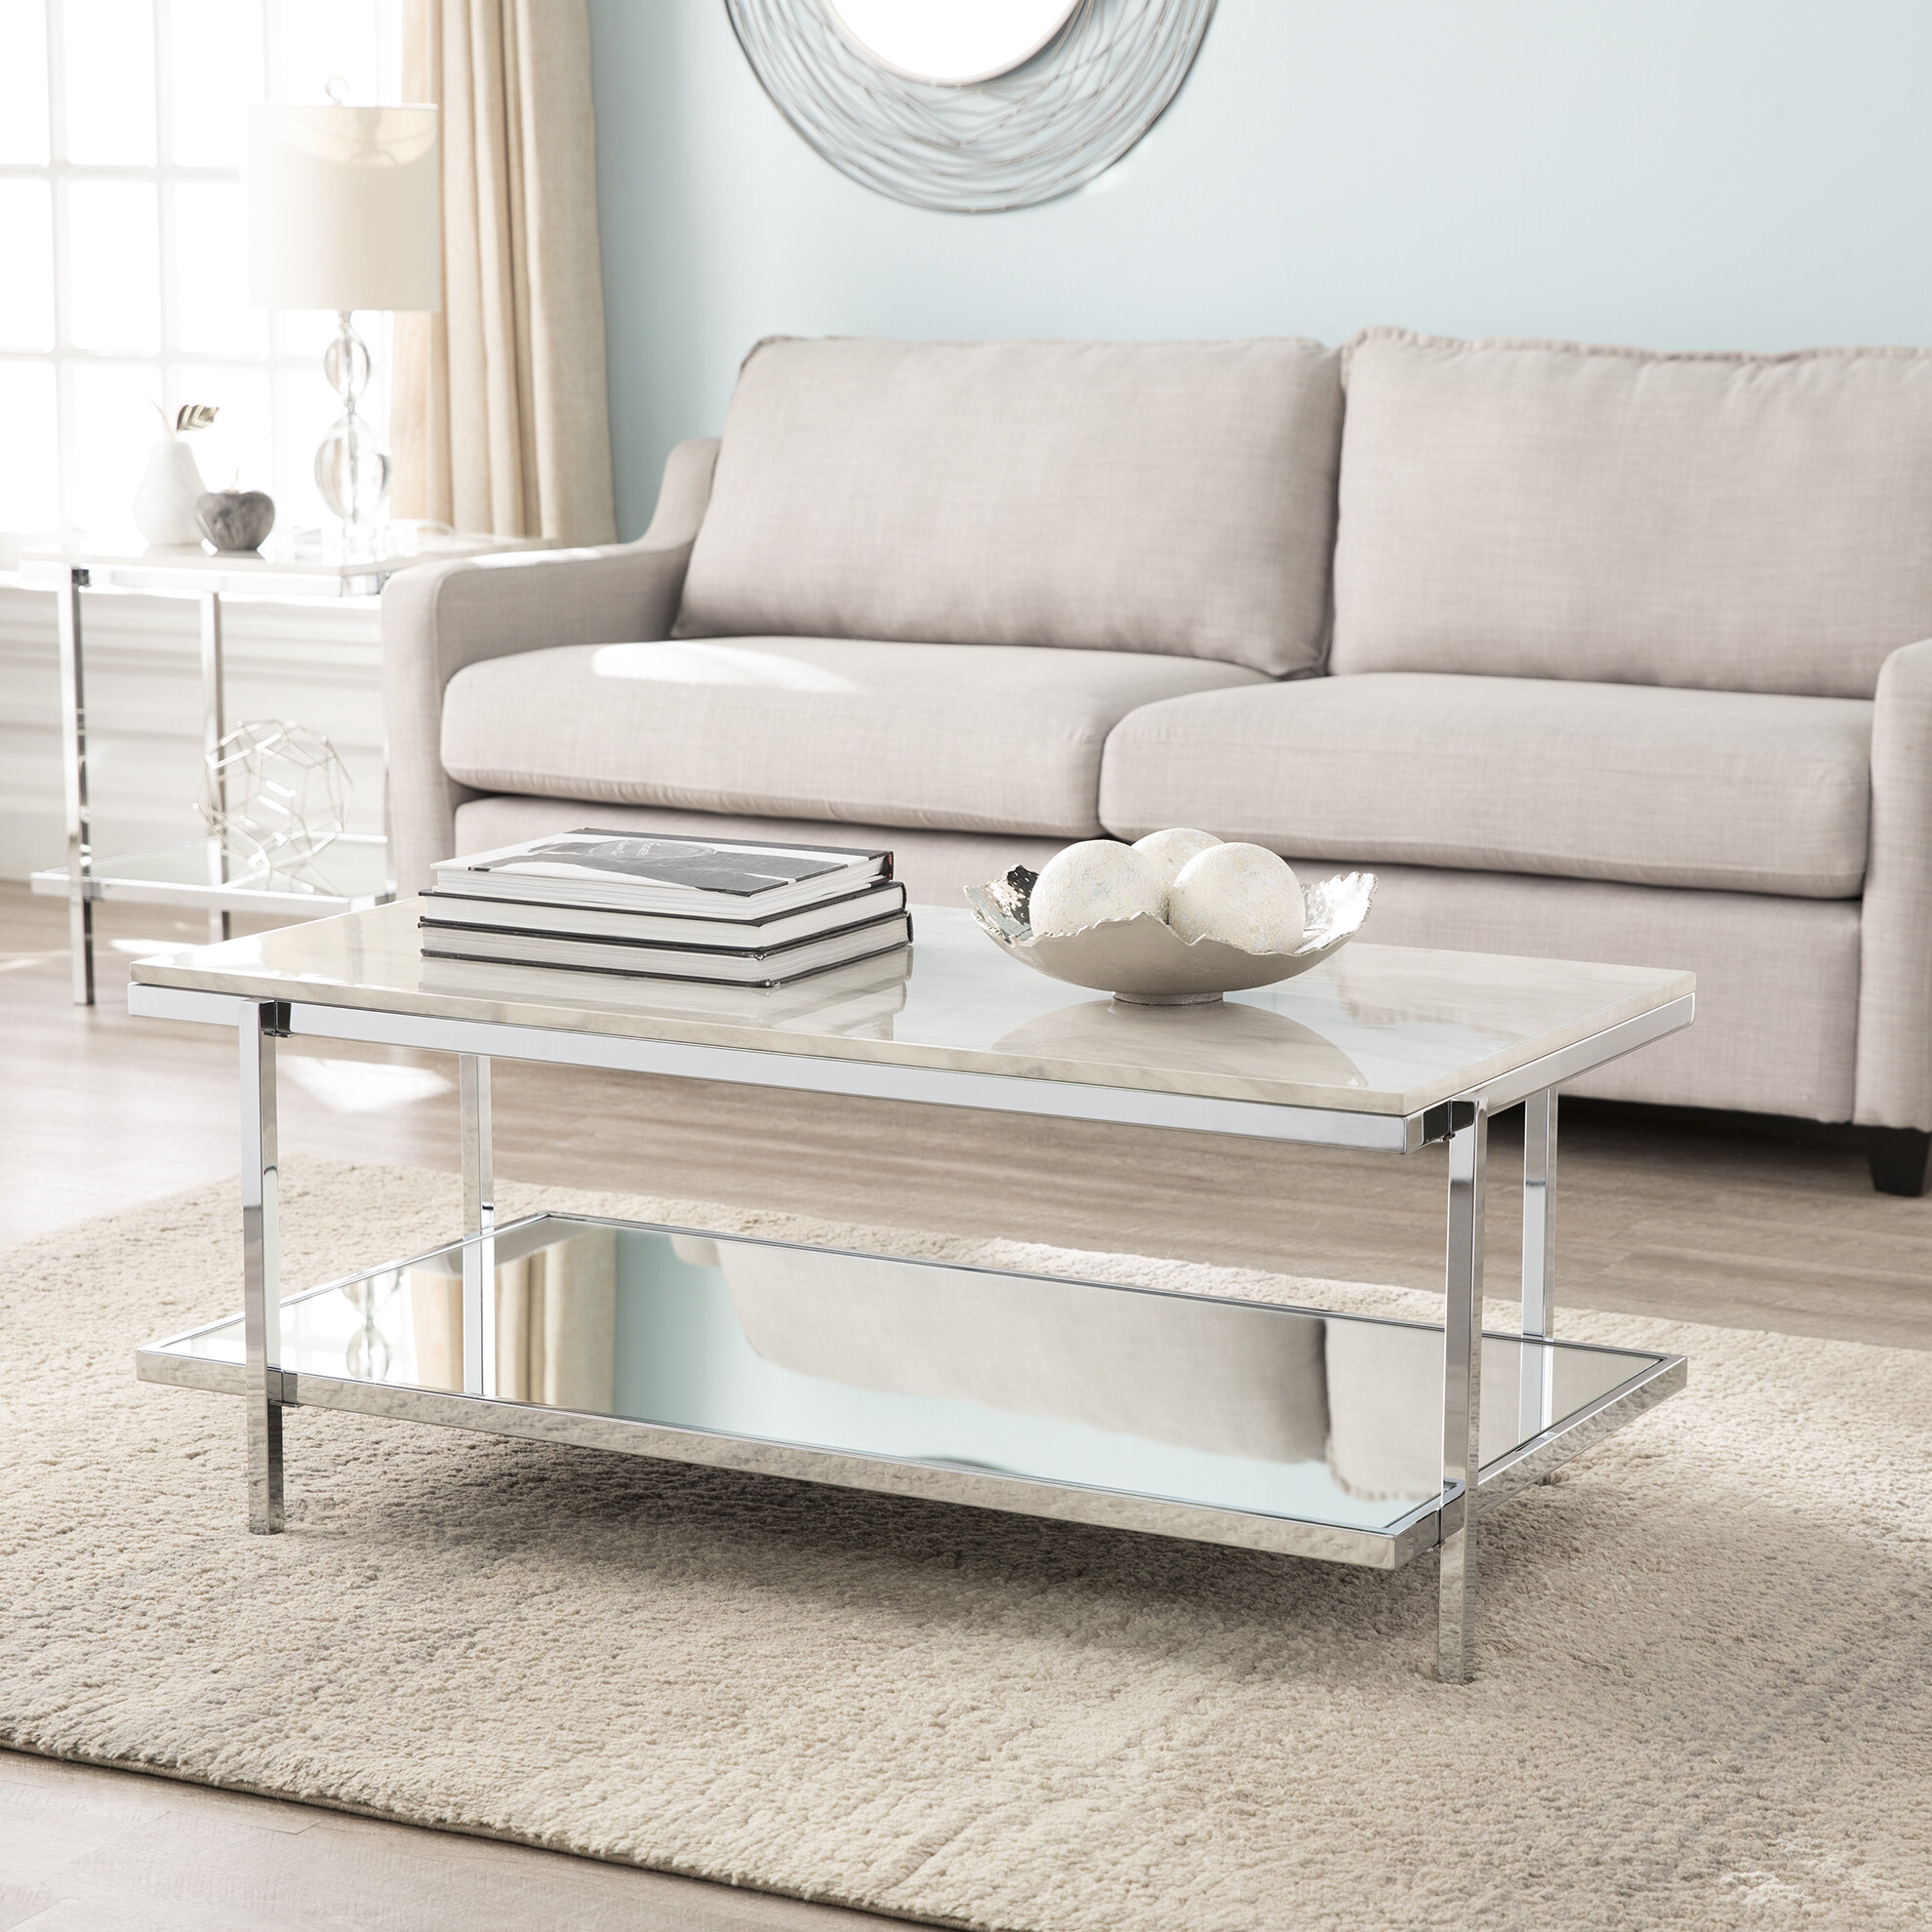 Miraculous Skipton Faux Marble 3 Piece Coffee Table Set Caraccident5 Cool Chair Designs And Ideas Caraccident5Info